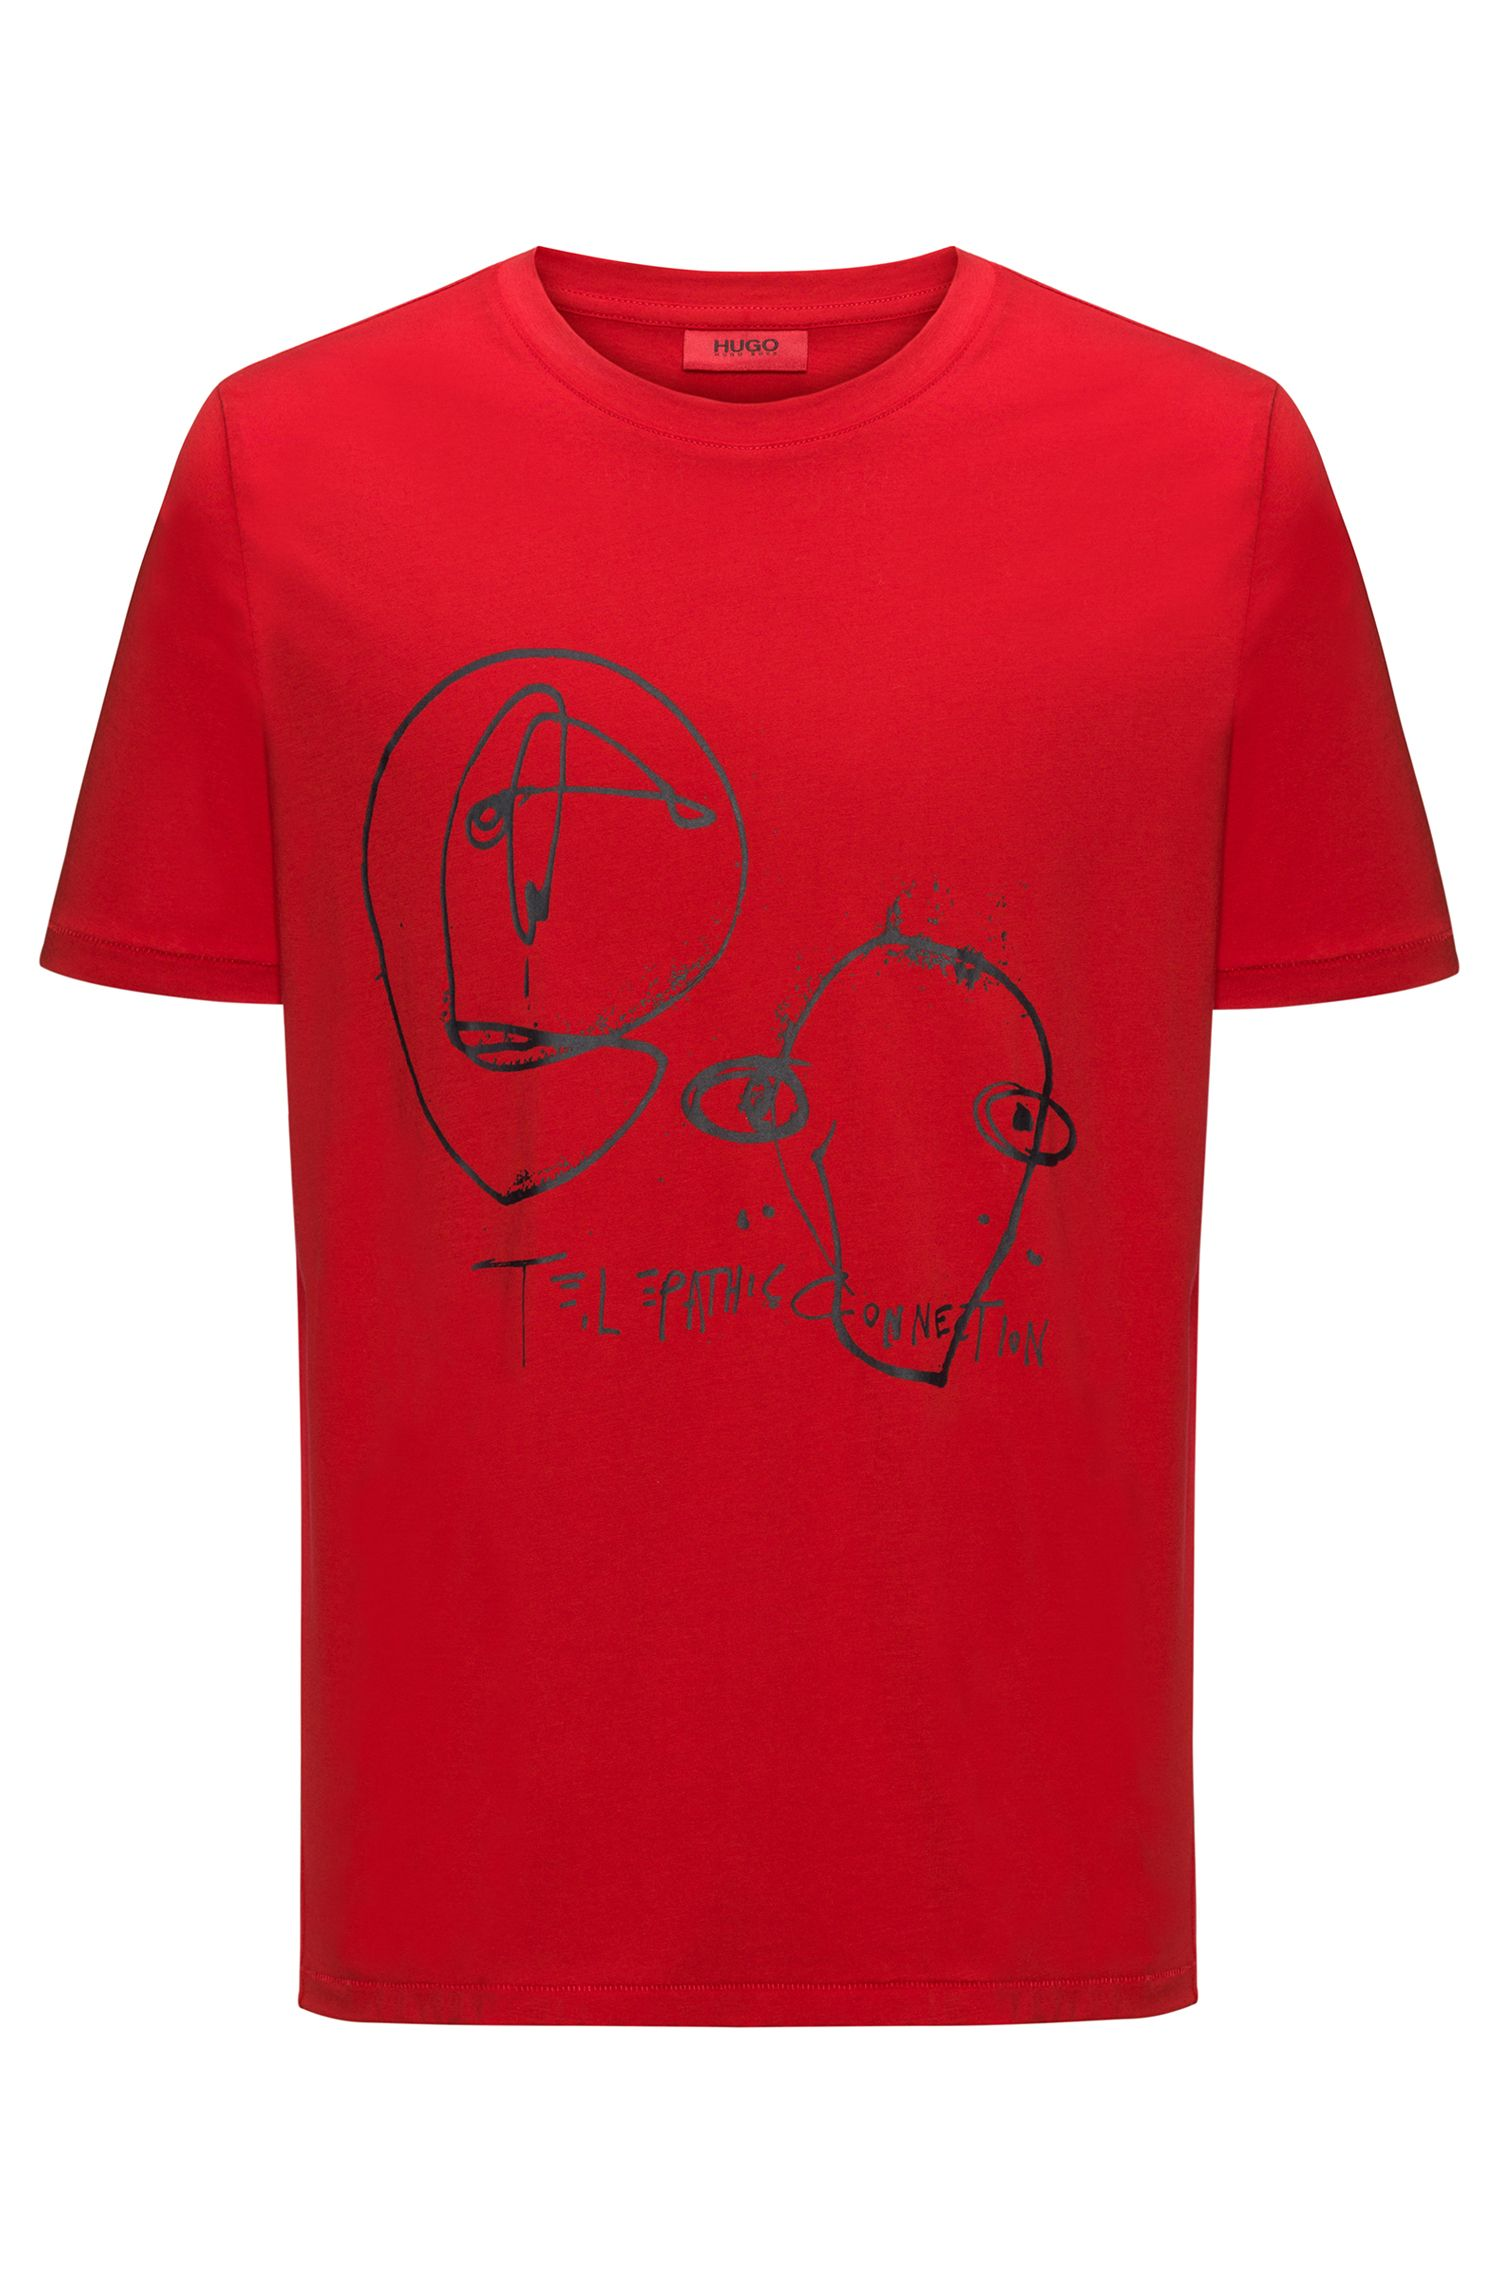 Abstract Graphic T-Shirt   Dears